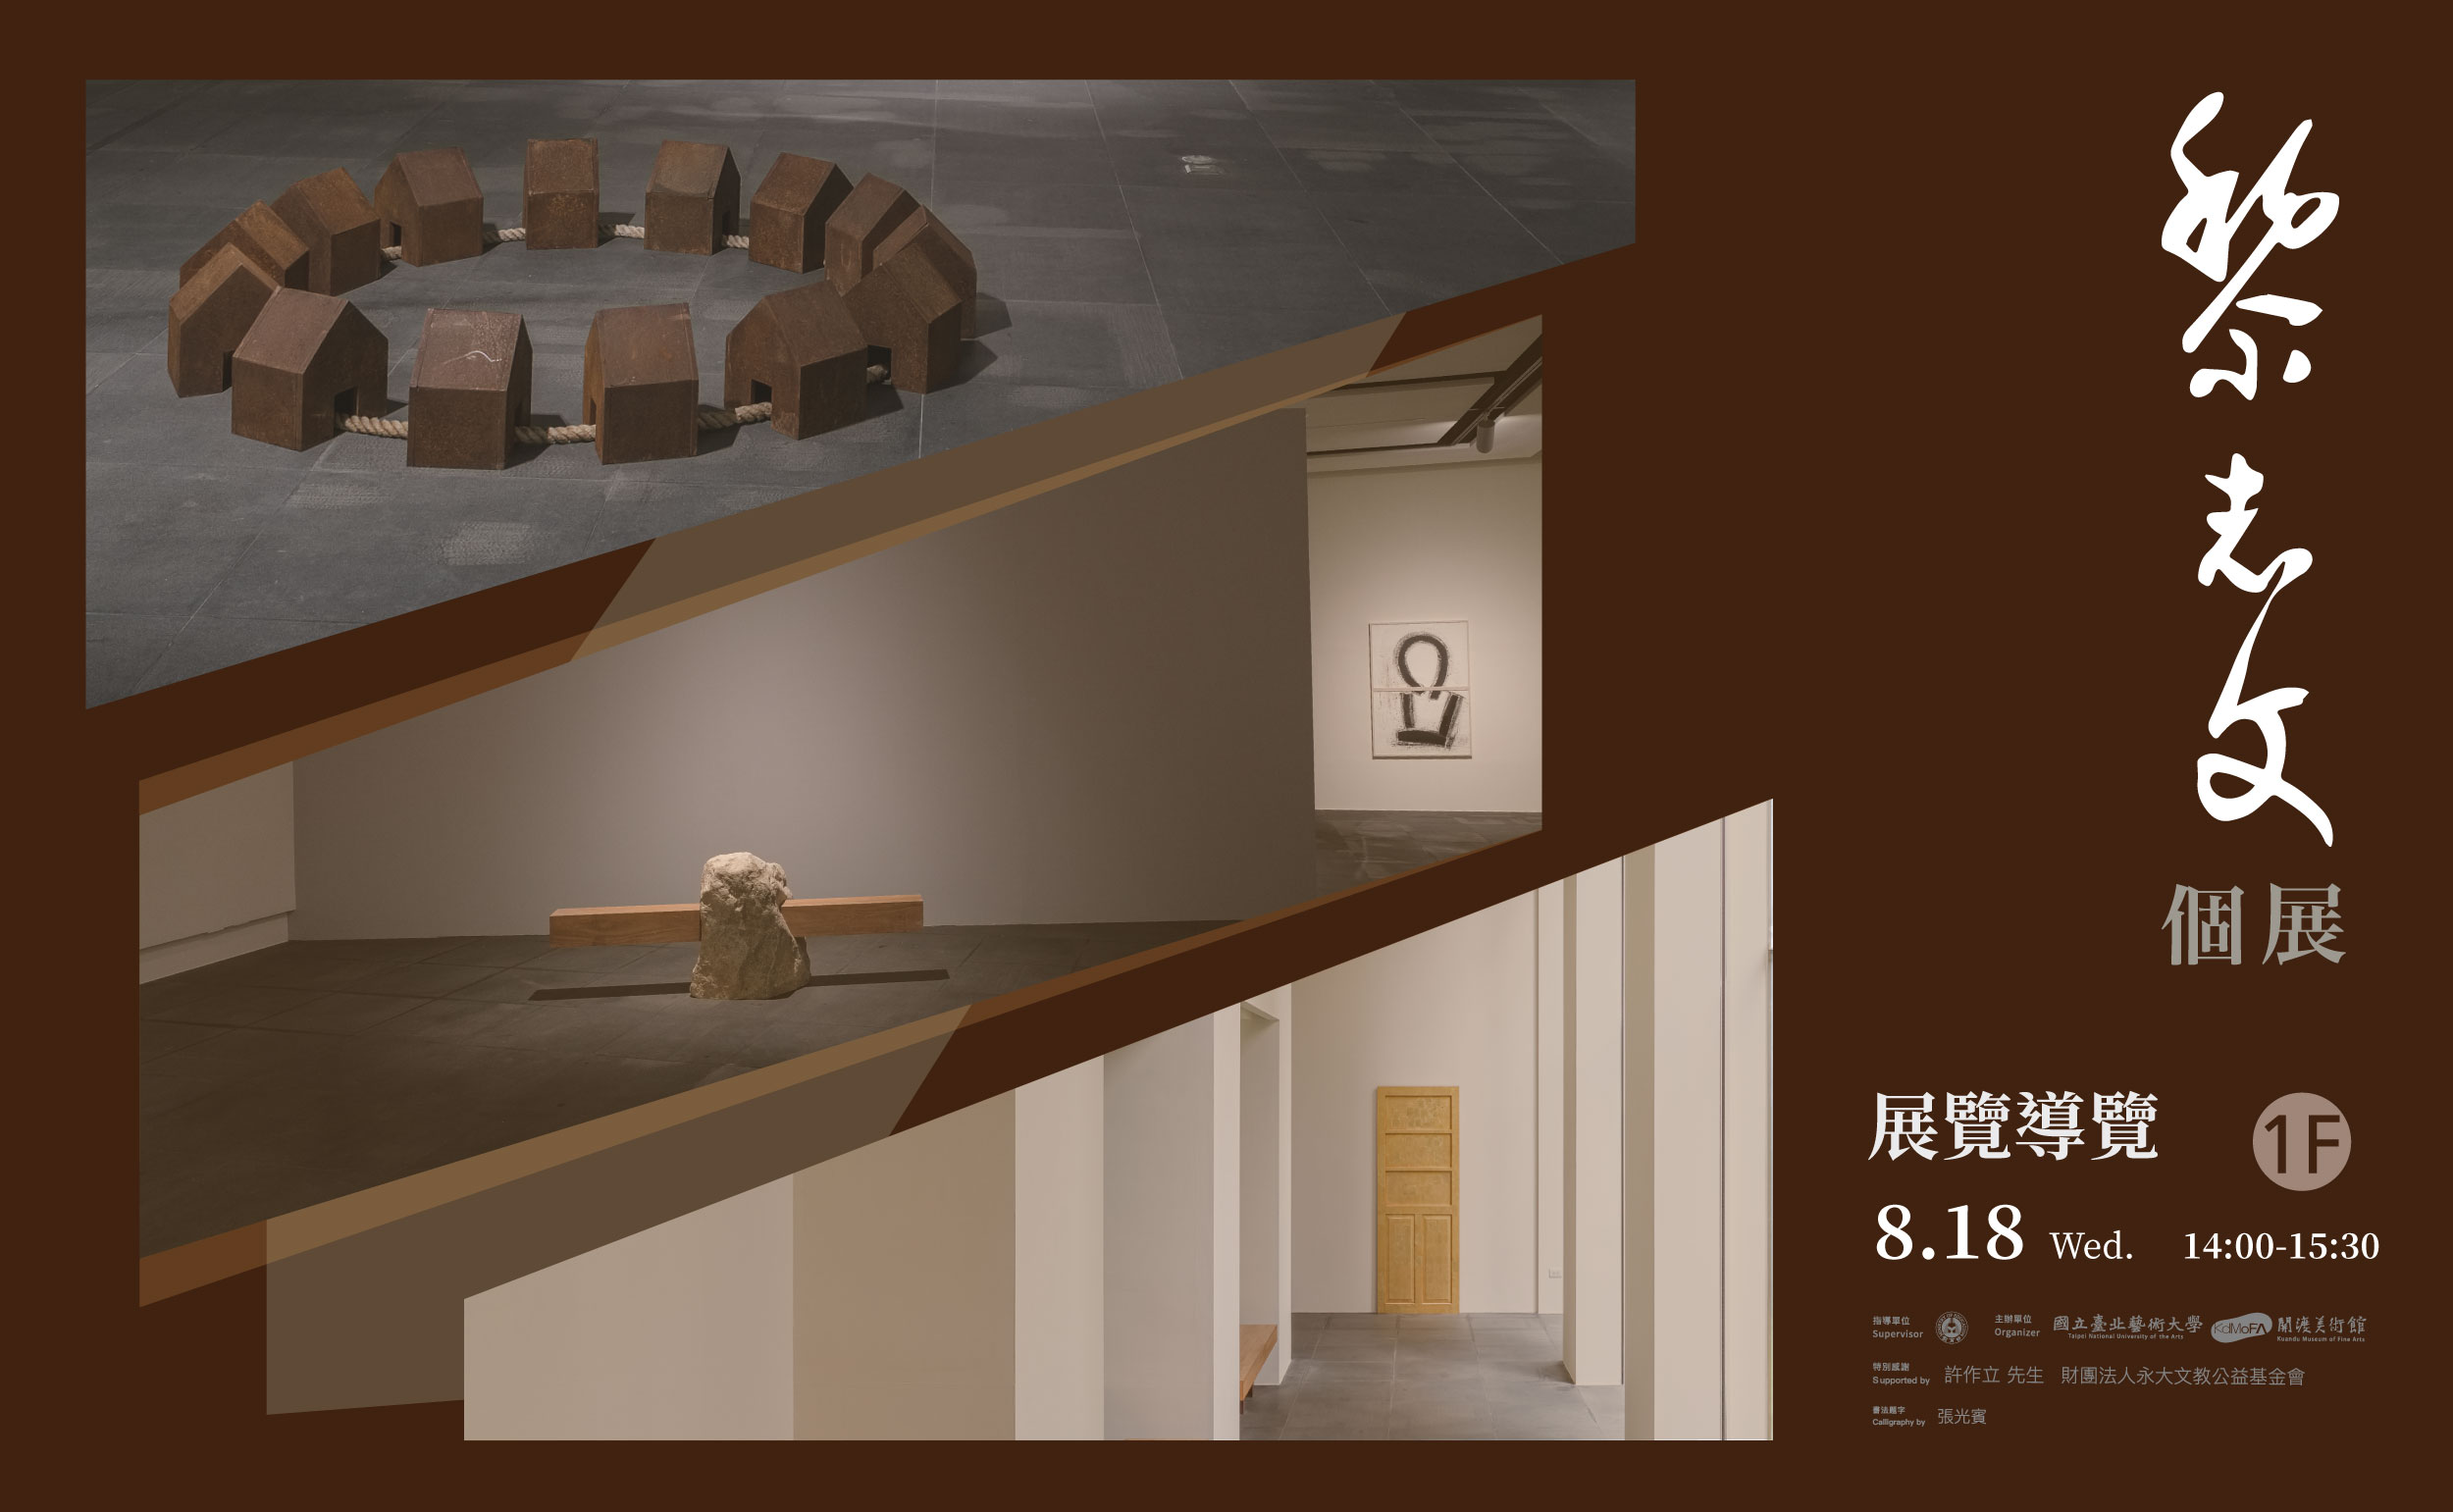 8/18(Wed) Introduction of Lai Chi Man Solo Exhibition